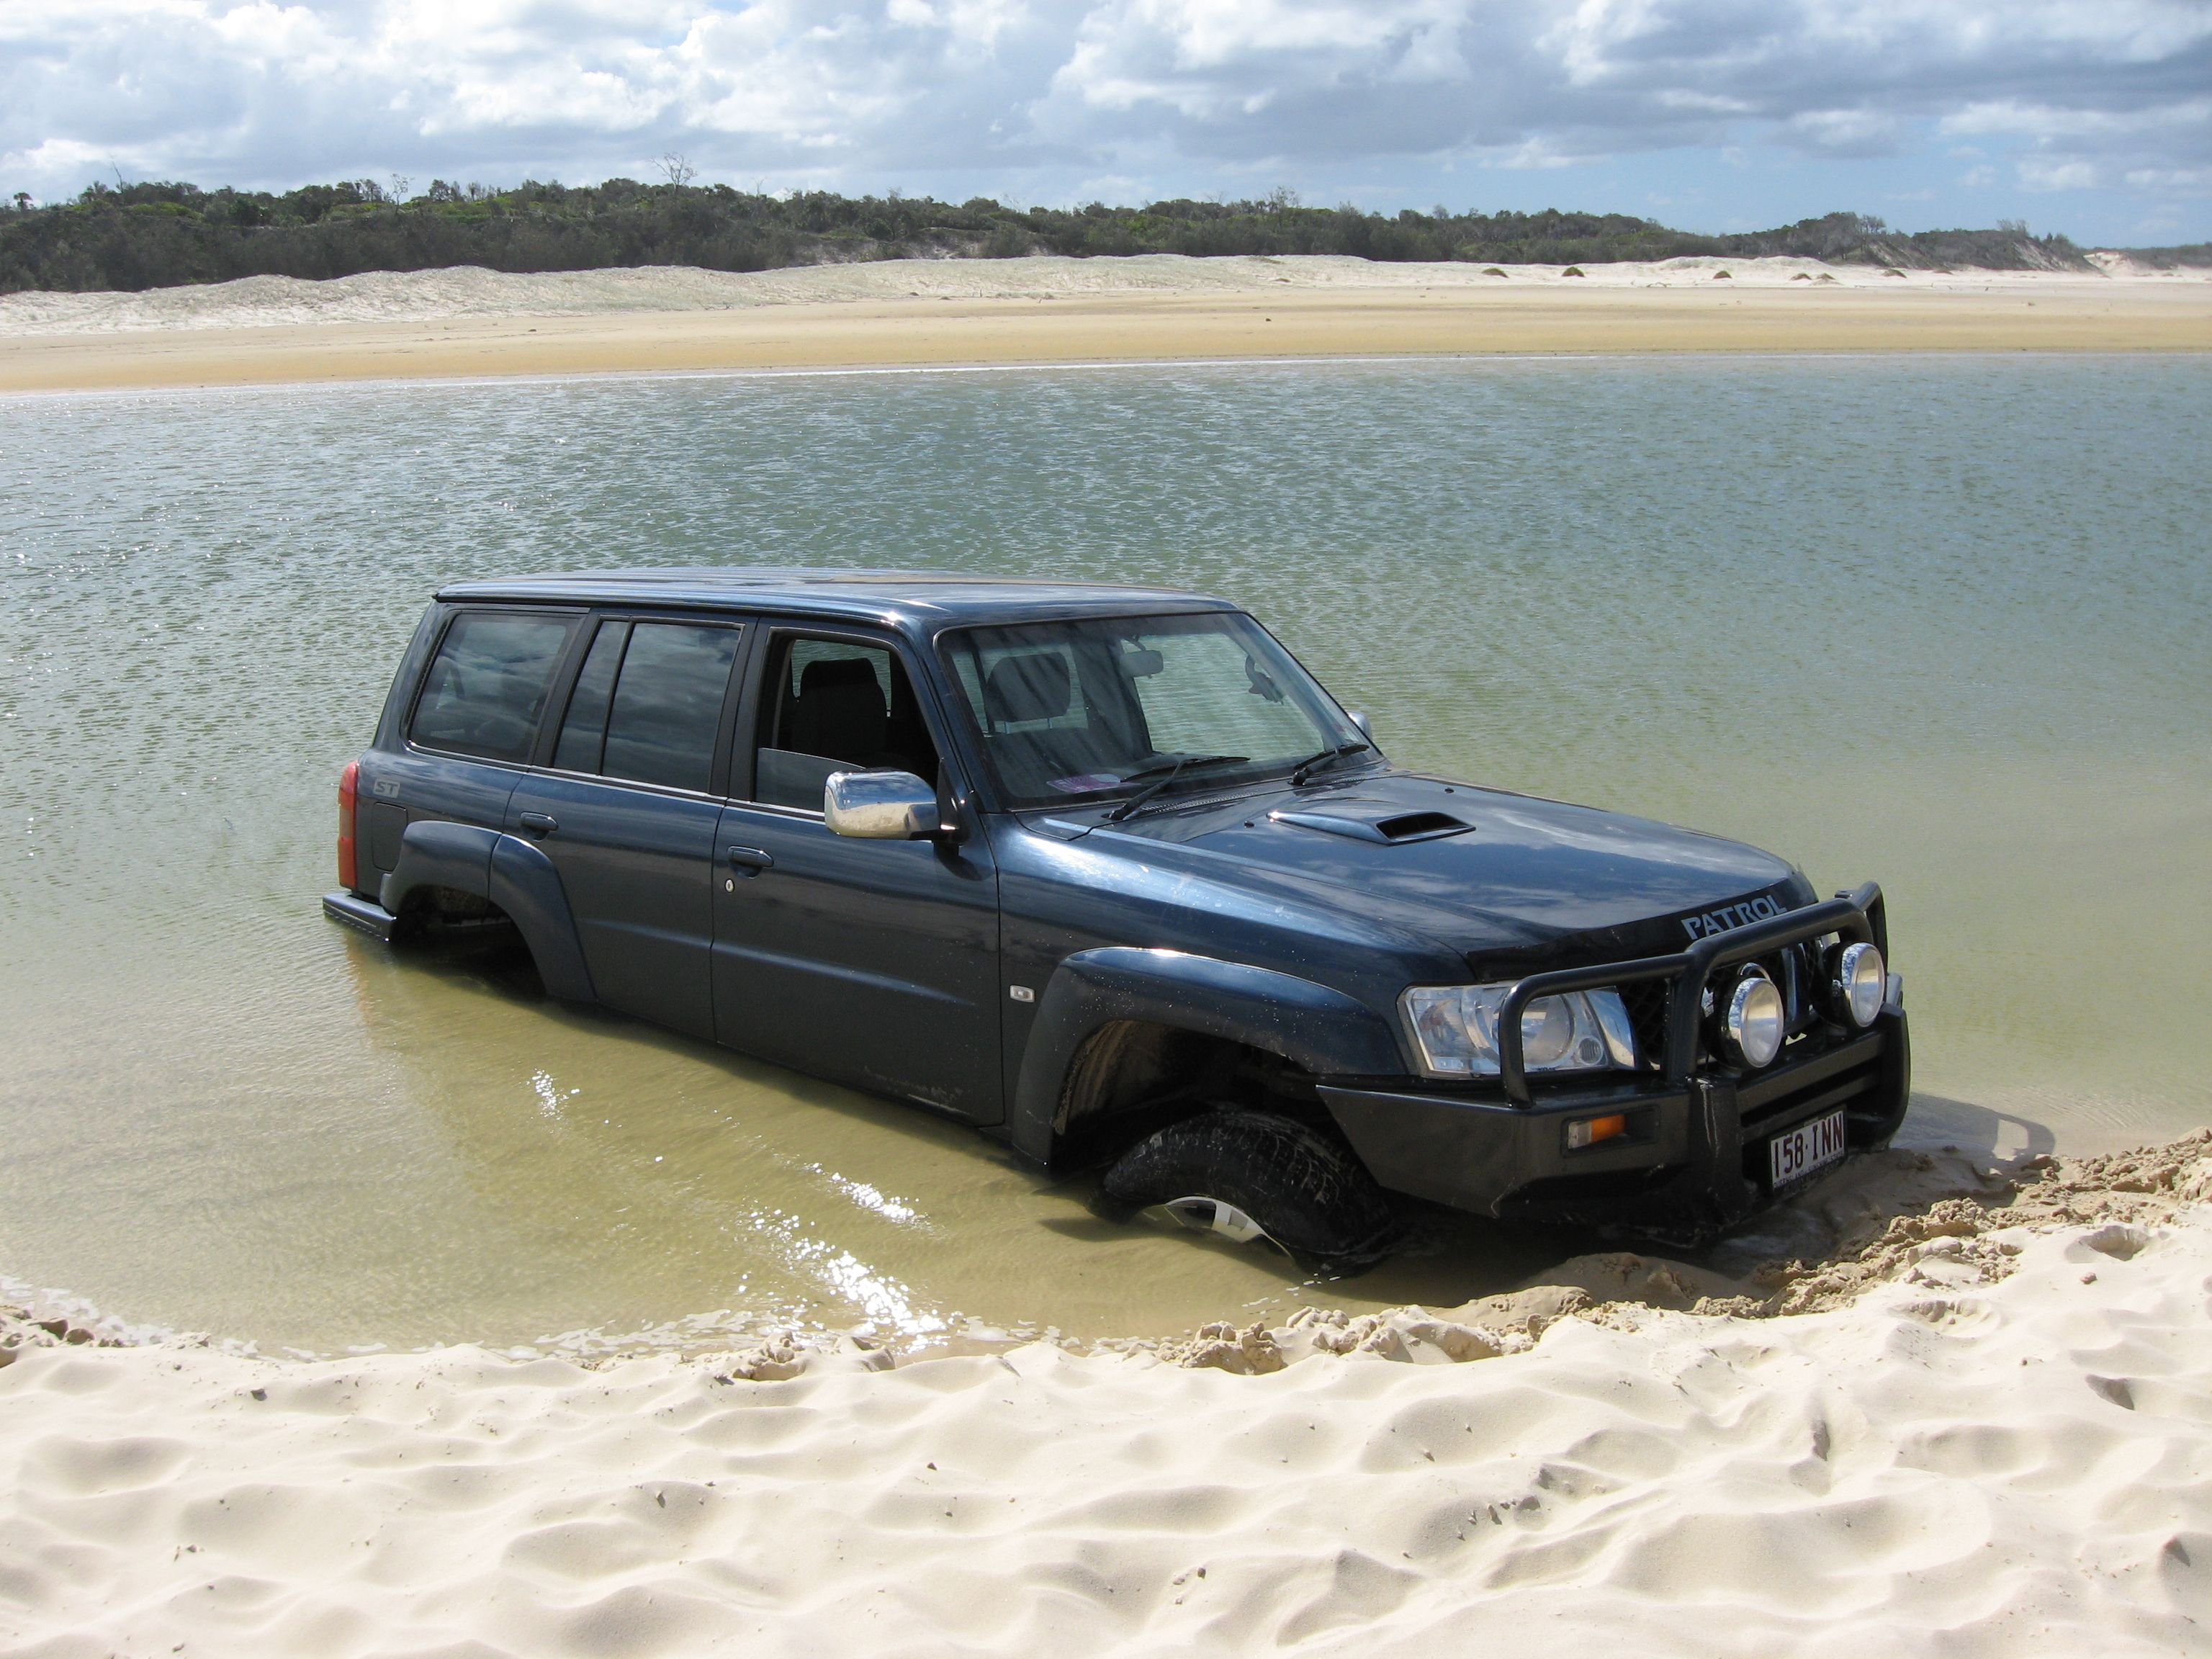 fraser island is accessible by 4wd vehicle but you must. Black Bedroom Furniture Sets. Home Design Ideas